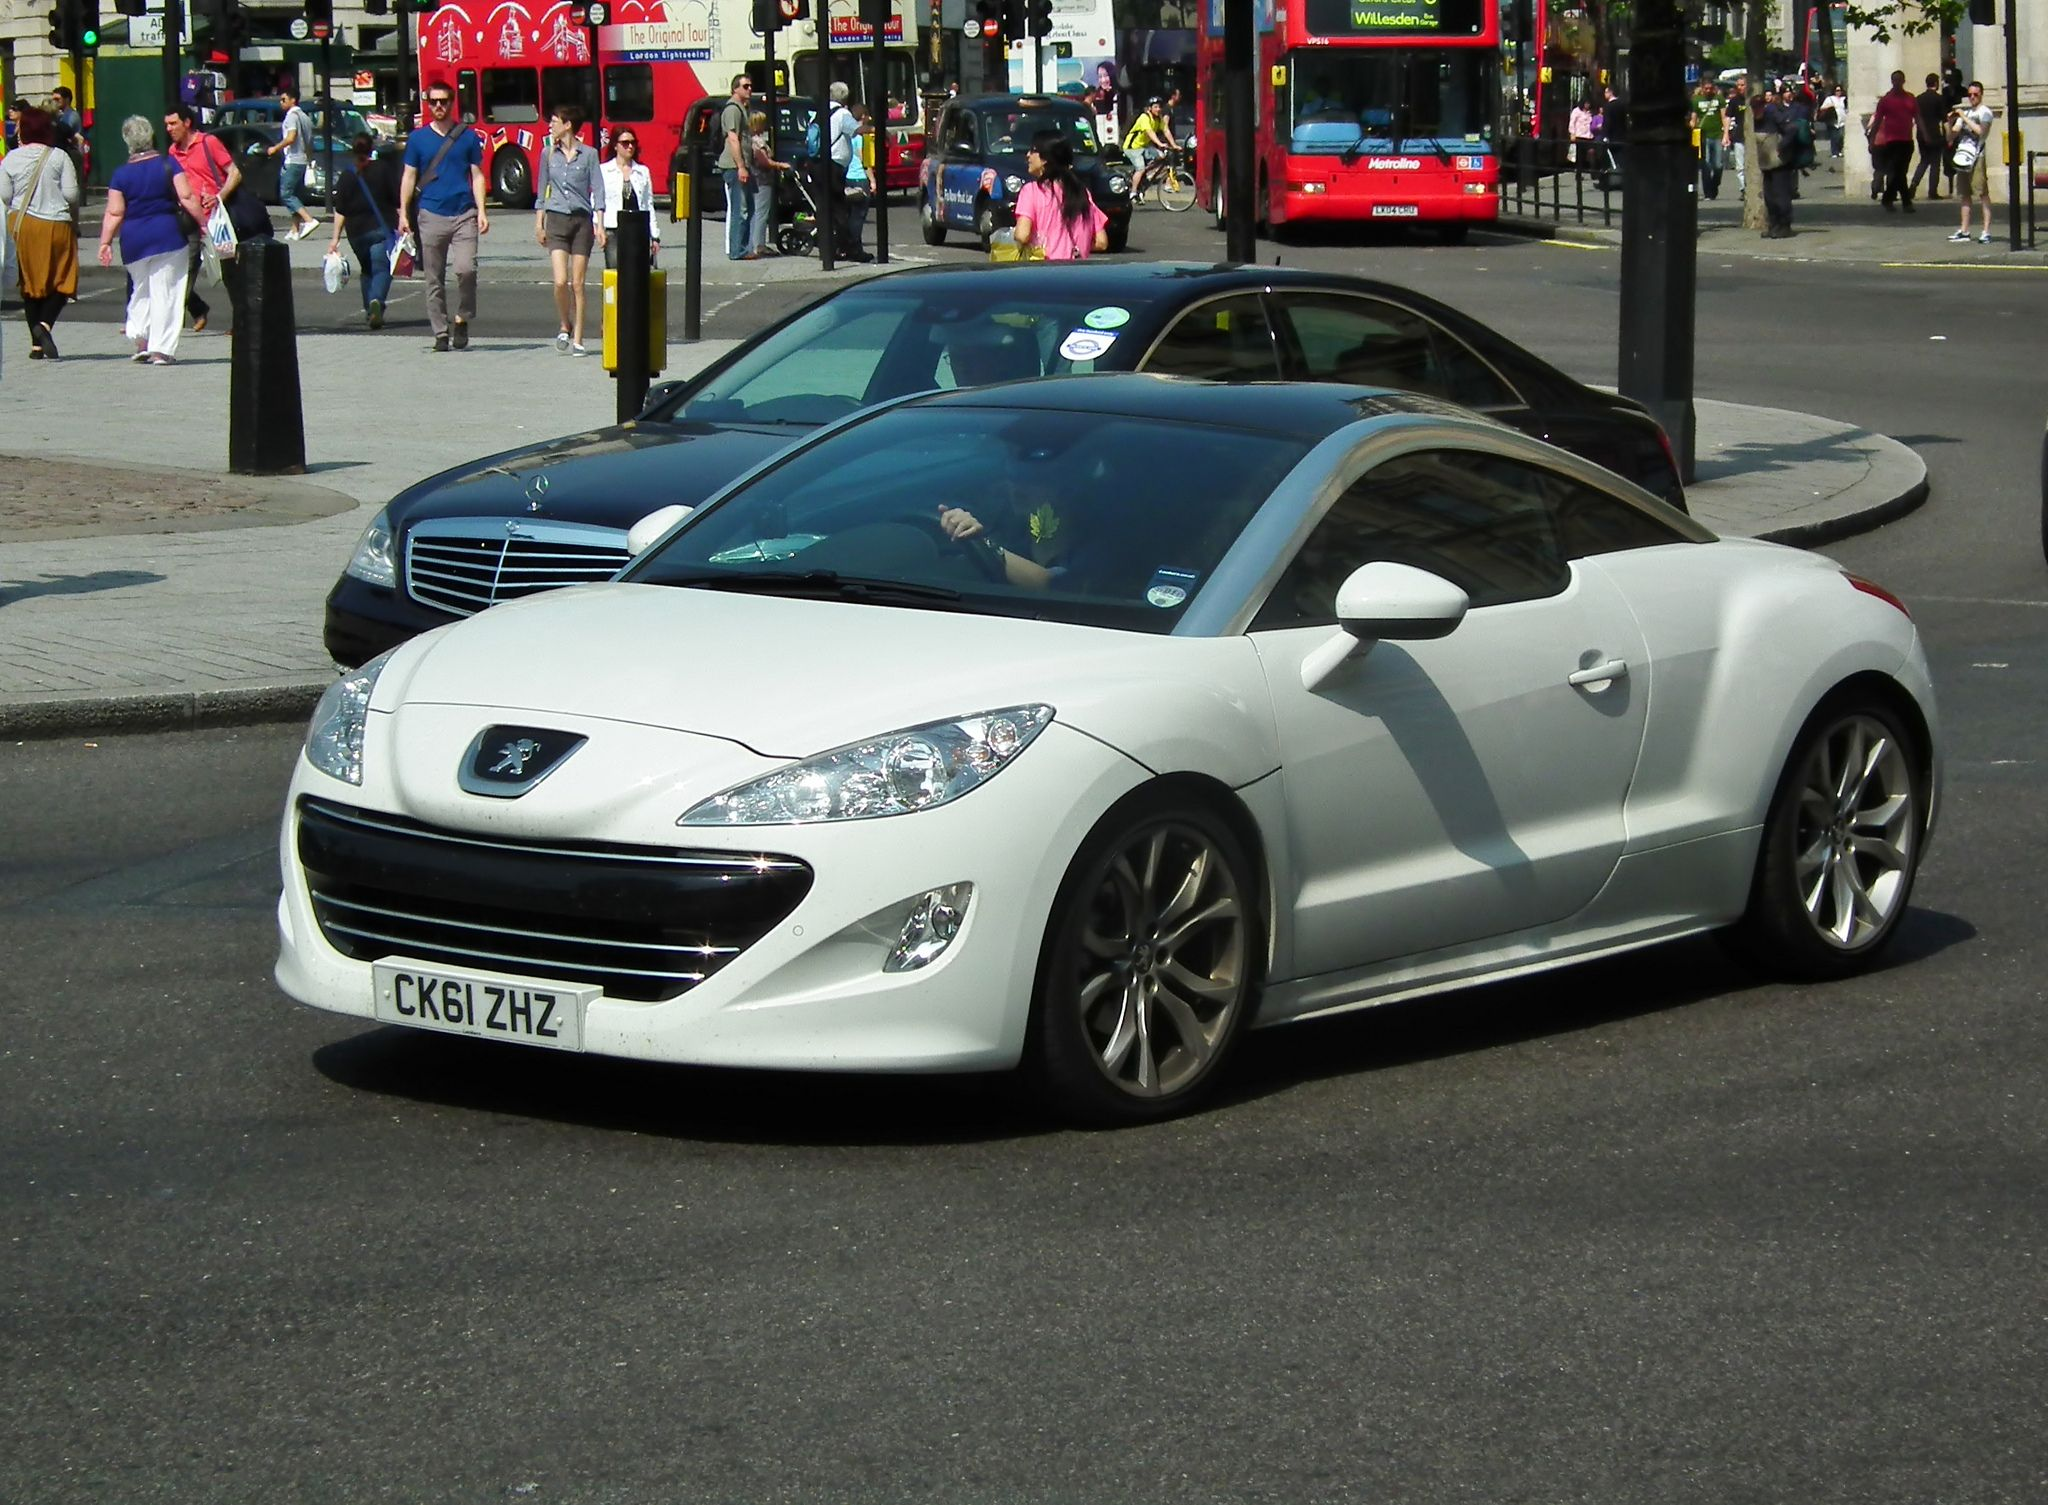 peugeot convertible rcz 28 images peugeot rcz sports coupe wallpaper car barn sport peugeot. Black Bedroom Furniture Sets. Home Design Ideas